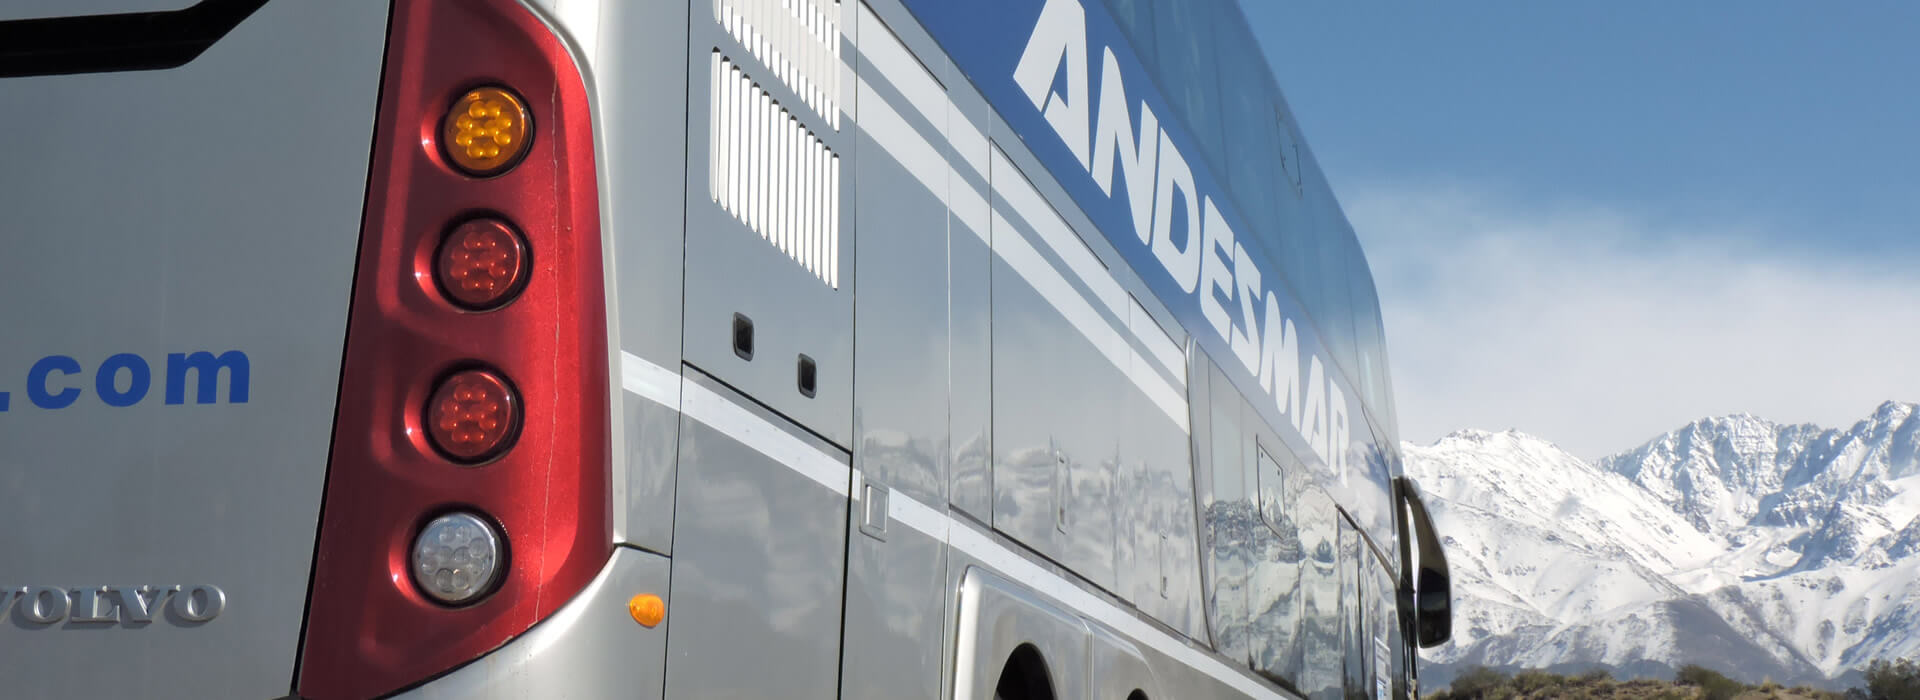 Andesmar long distance buses